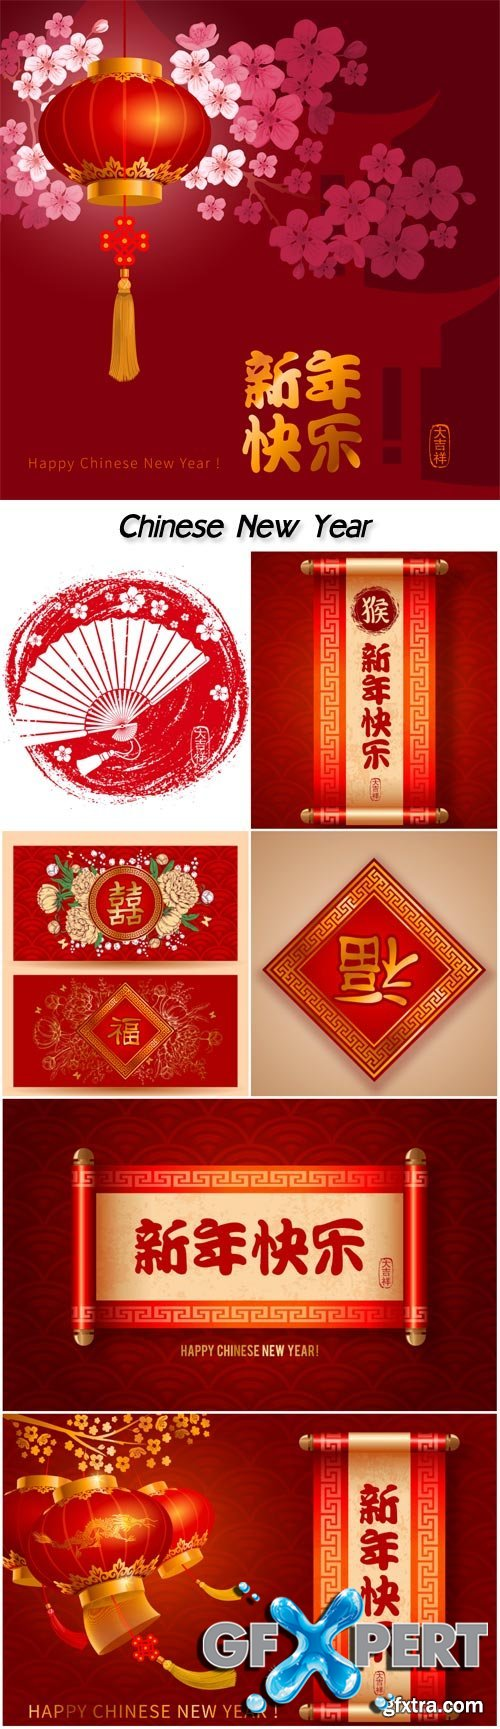 Chinese New Year festive vector card with red lanterns